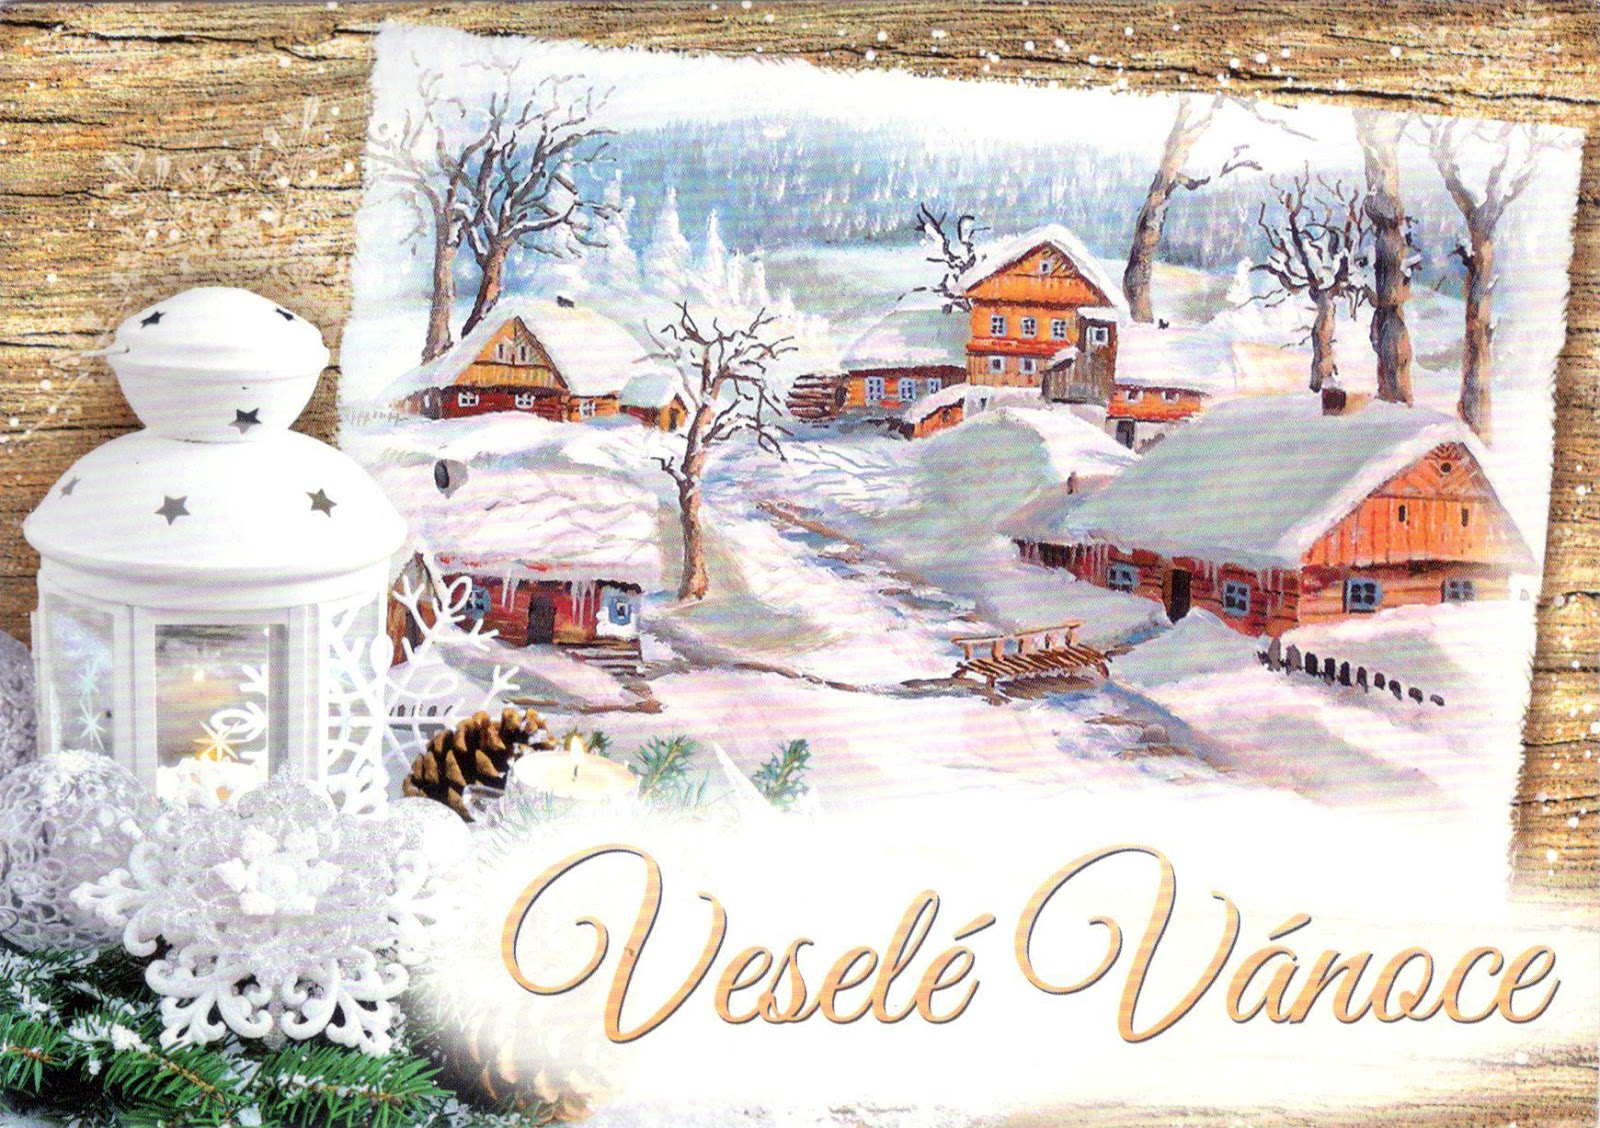 World Come To My Home 3234 Christmas Czech Republic Vesel Vnoce